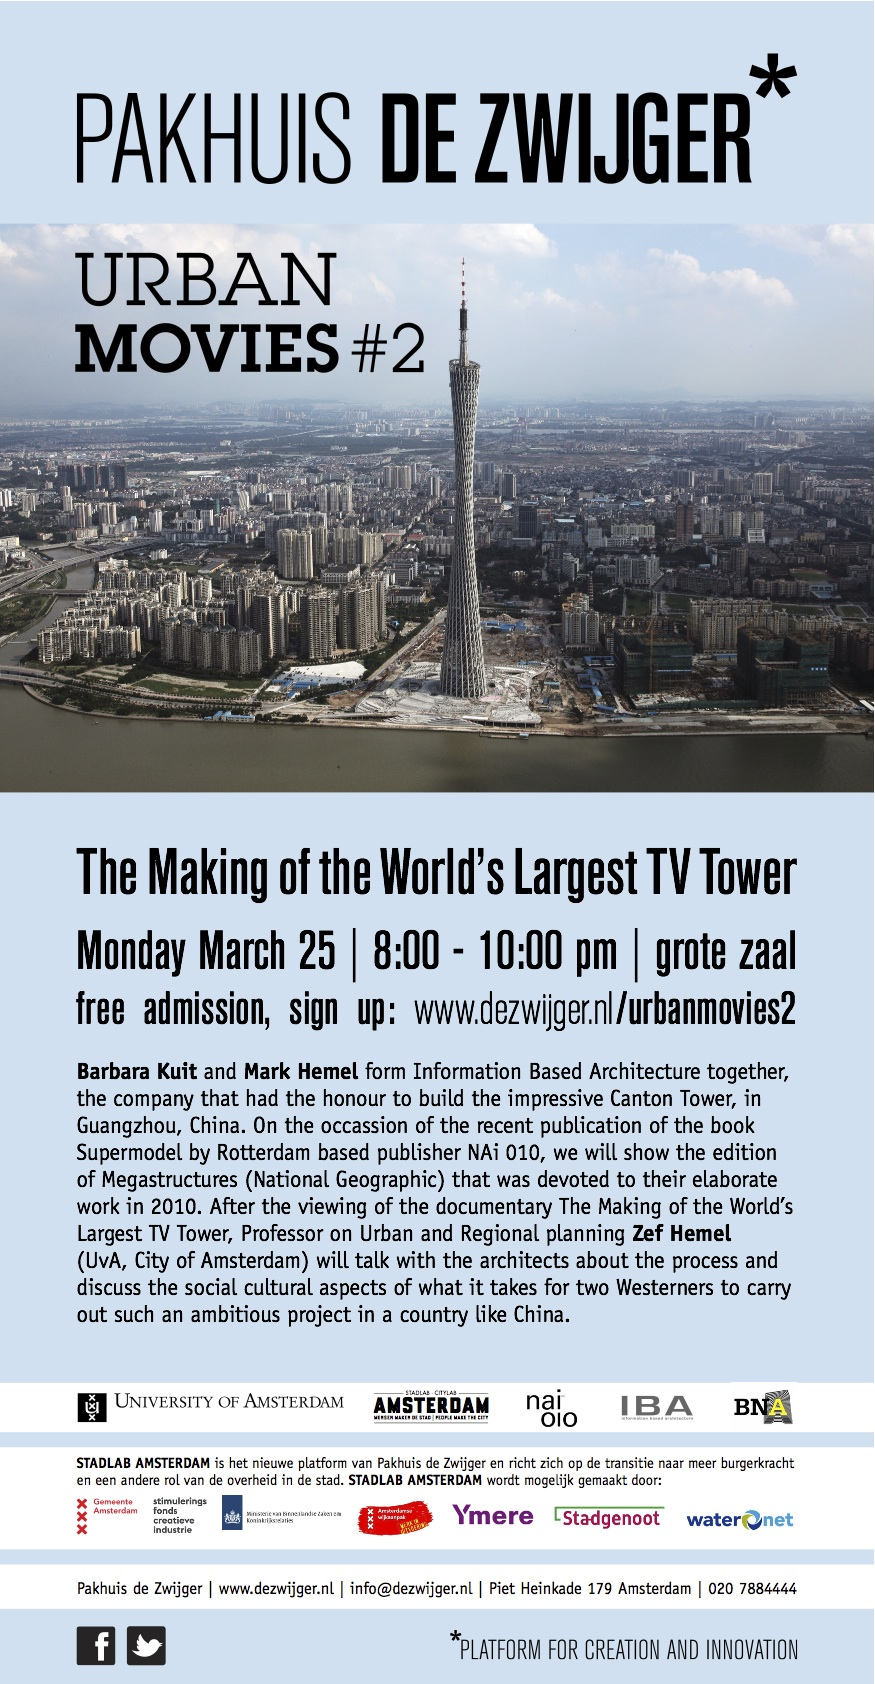 The Making of the World's Largest TV Tower